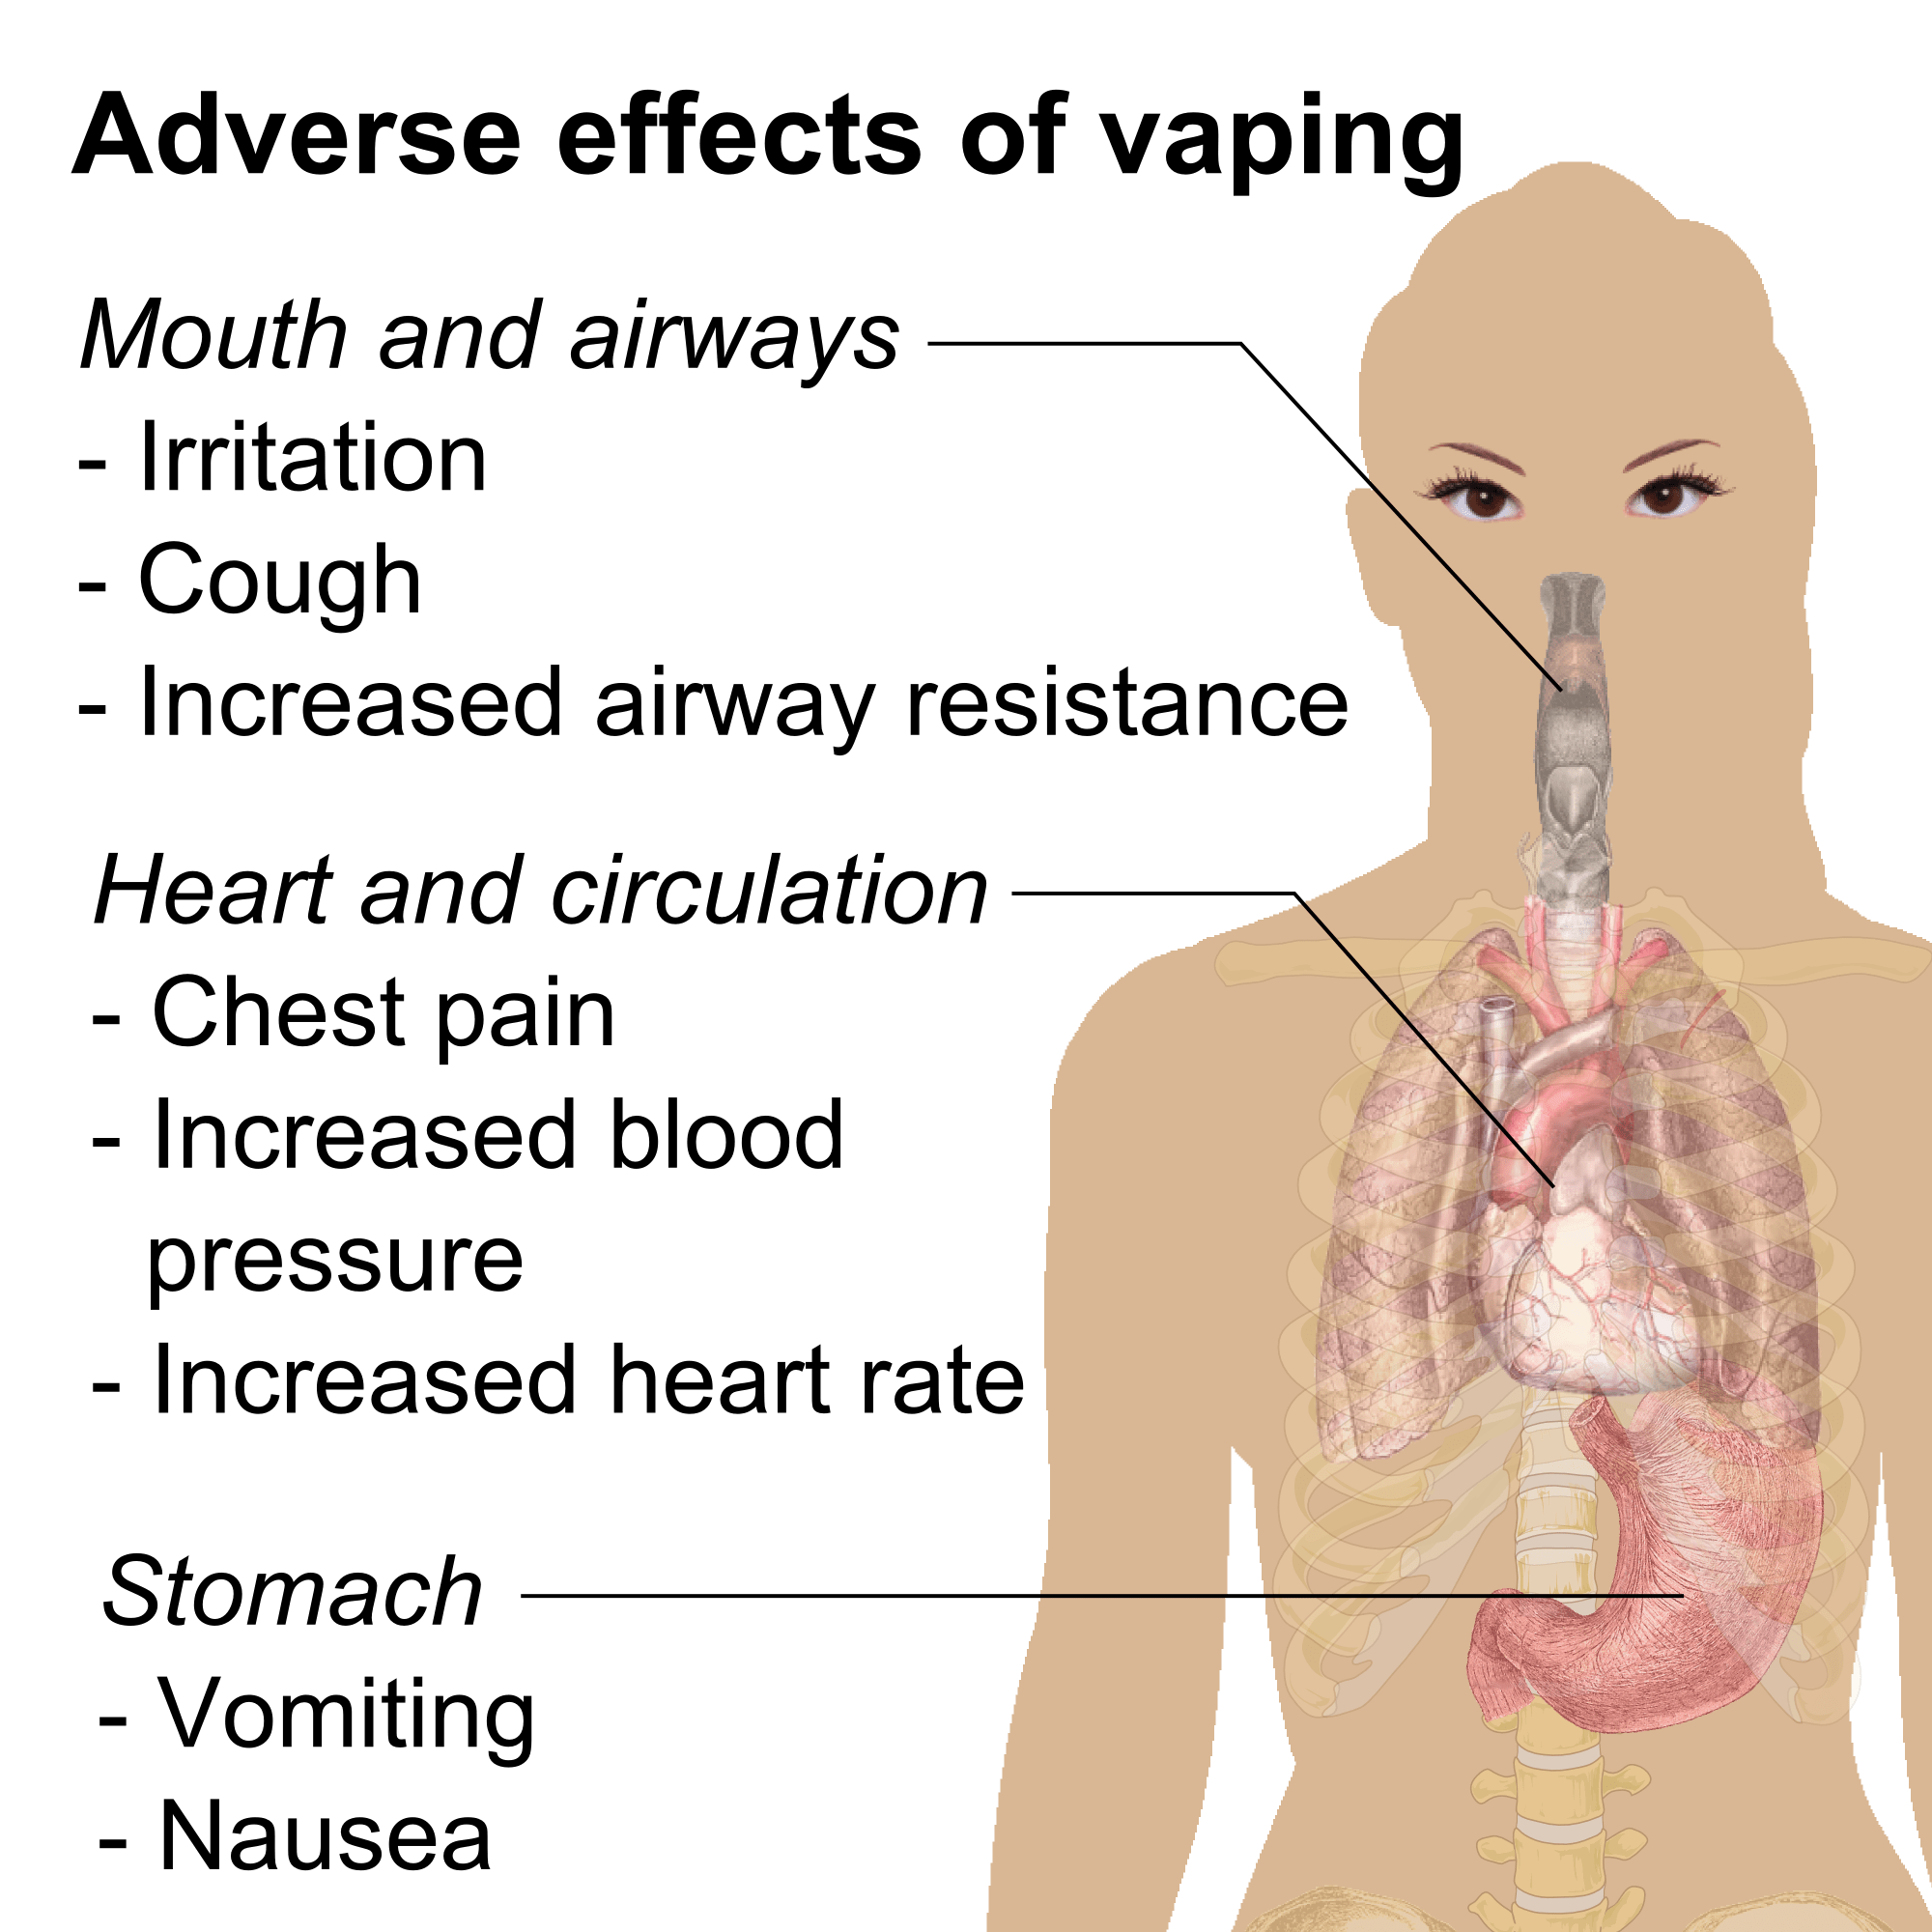 Effects of Vaping